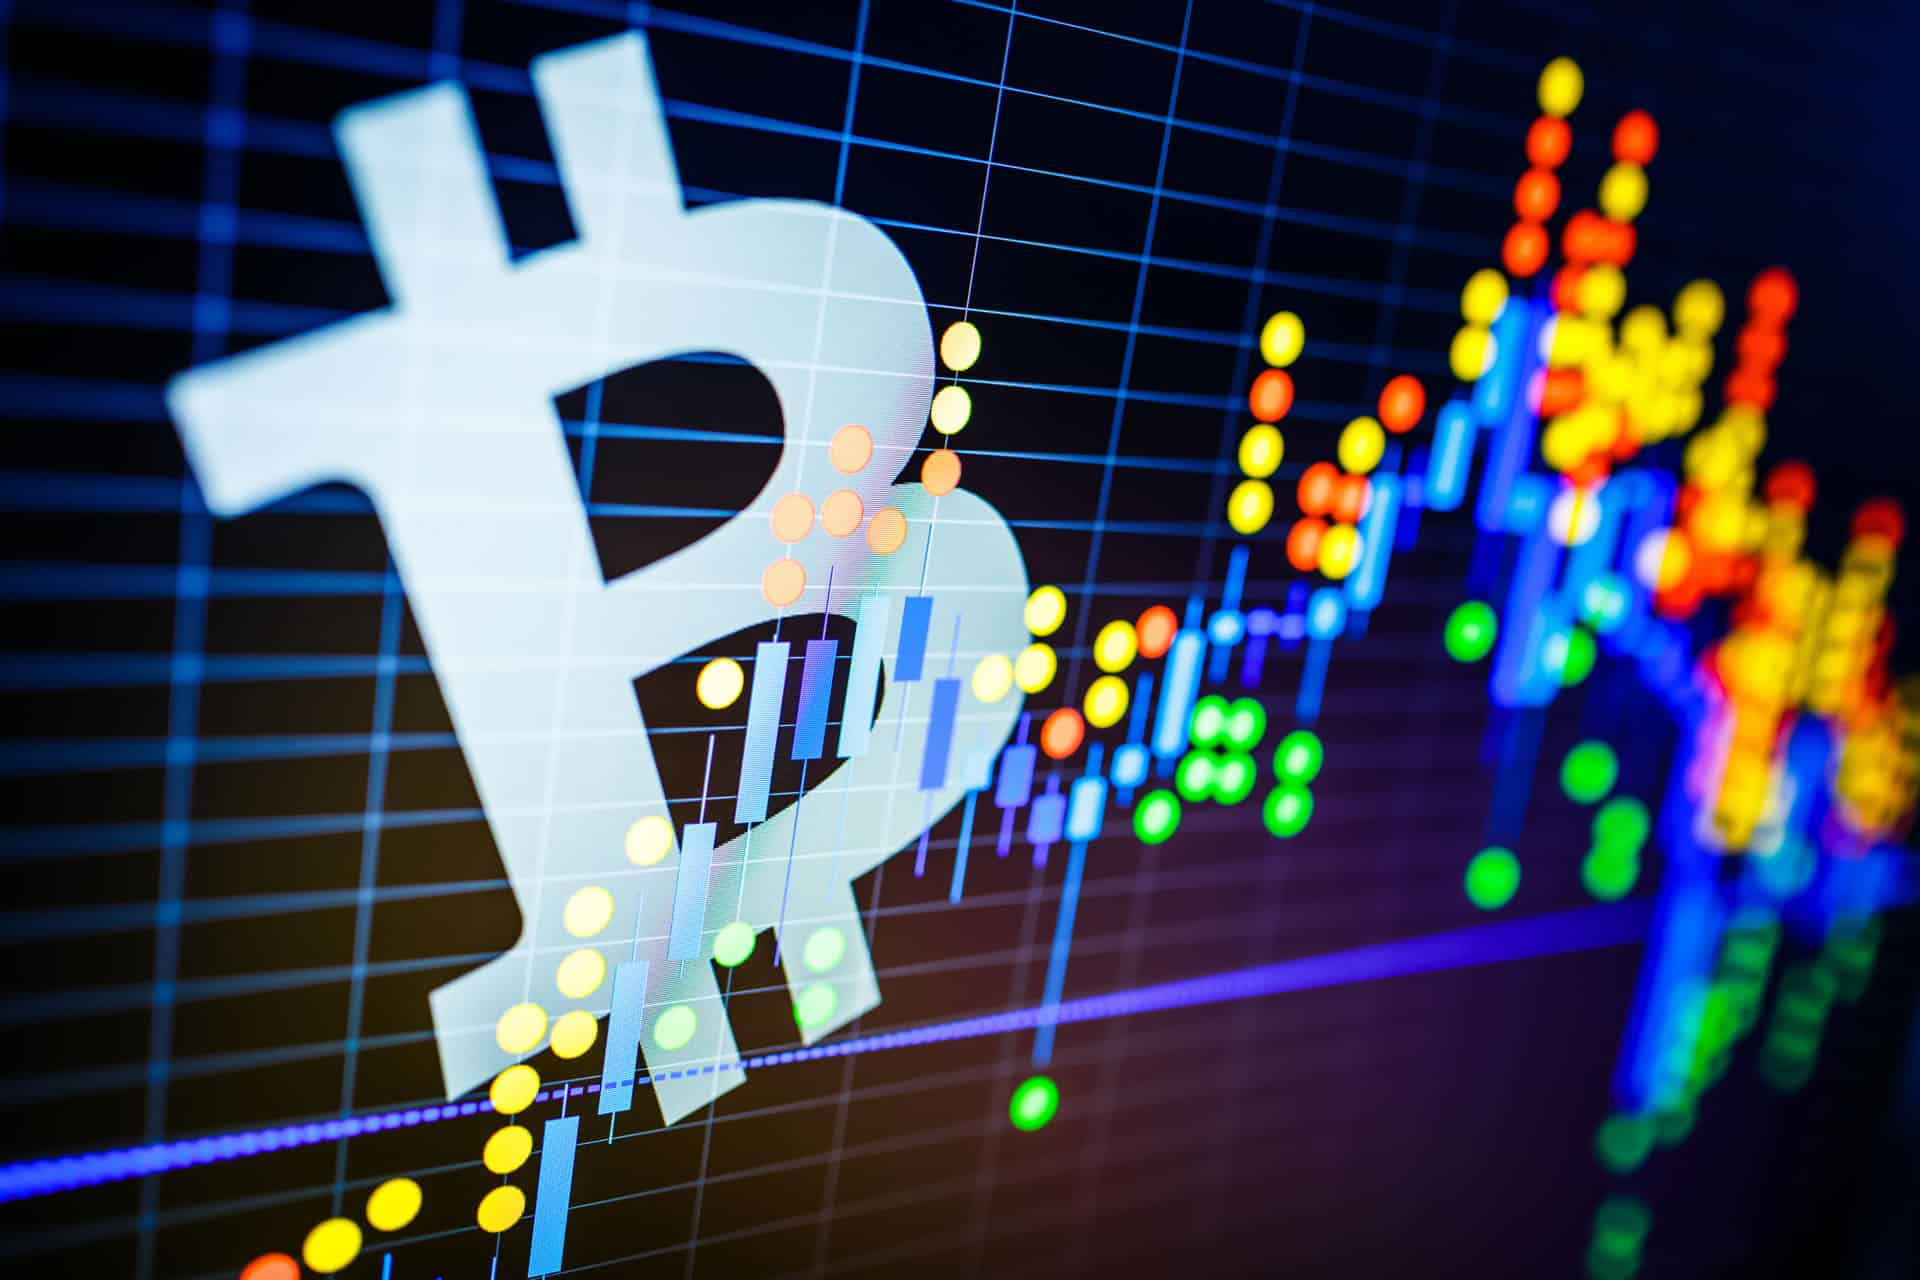 Bitcoin price makes the final approach to a new yearly high as investors anticipate another rally